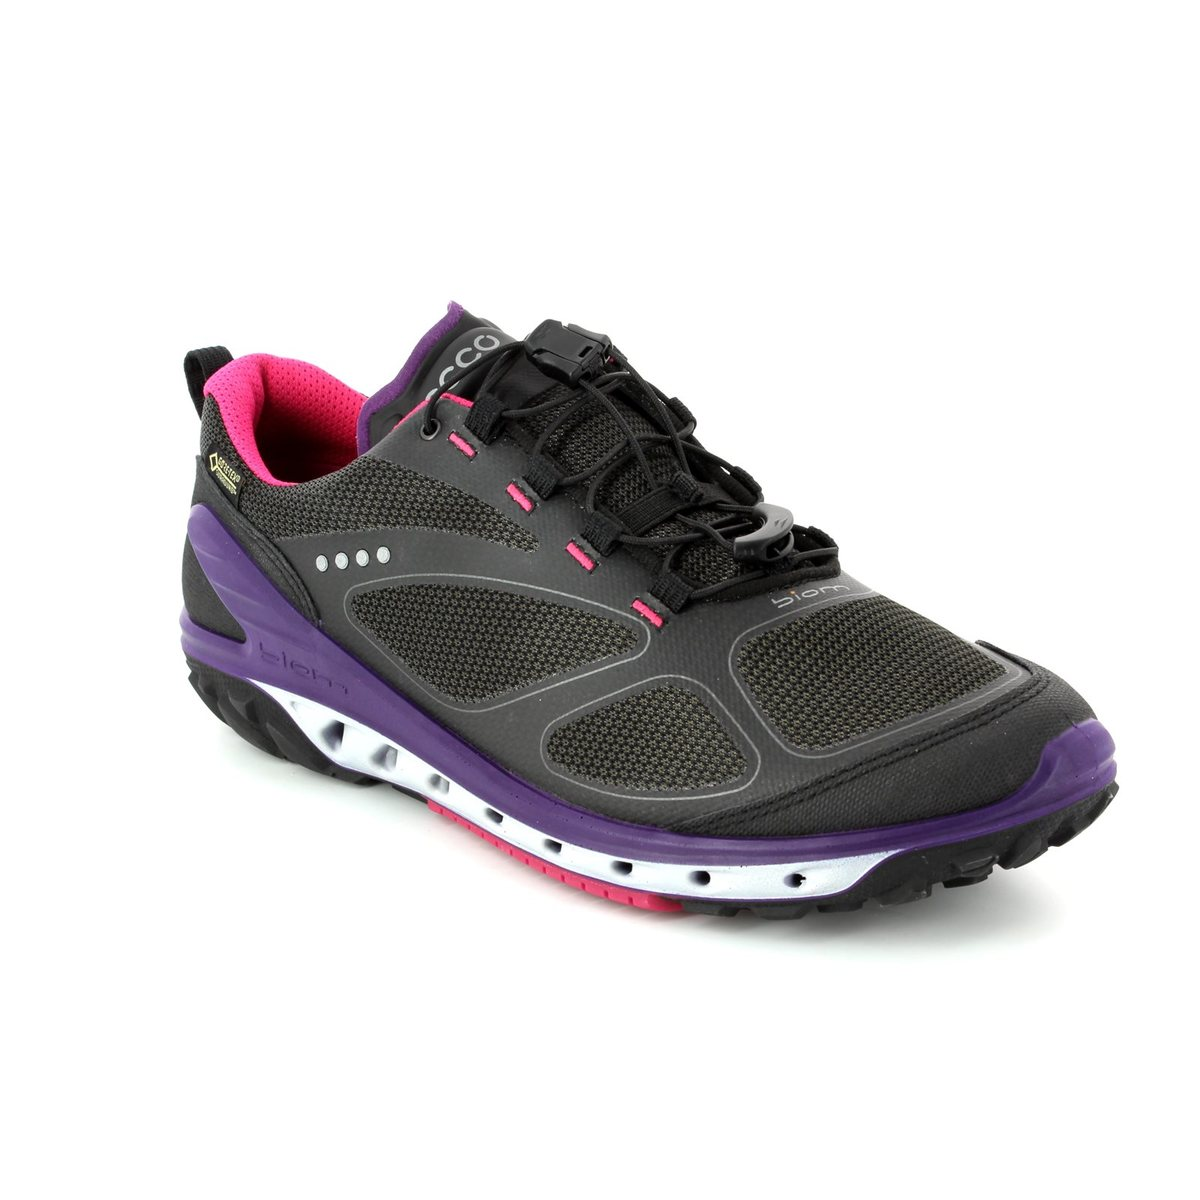 7fa2e05870b6 ECCO Walking Shoes - BKPU - 820703 50245 BIOM VENTURE LADIES GORE-TEX